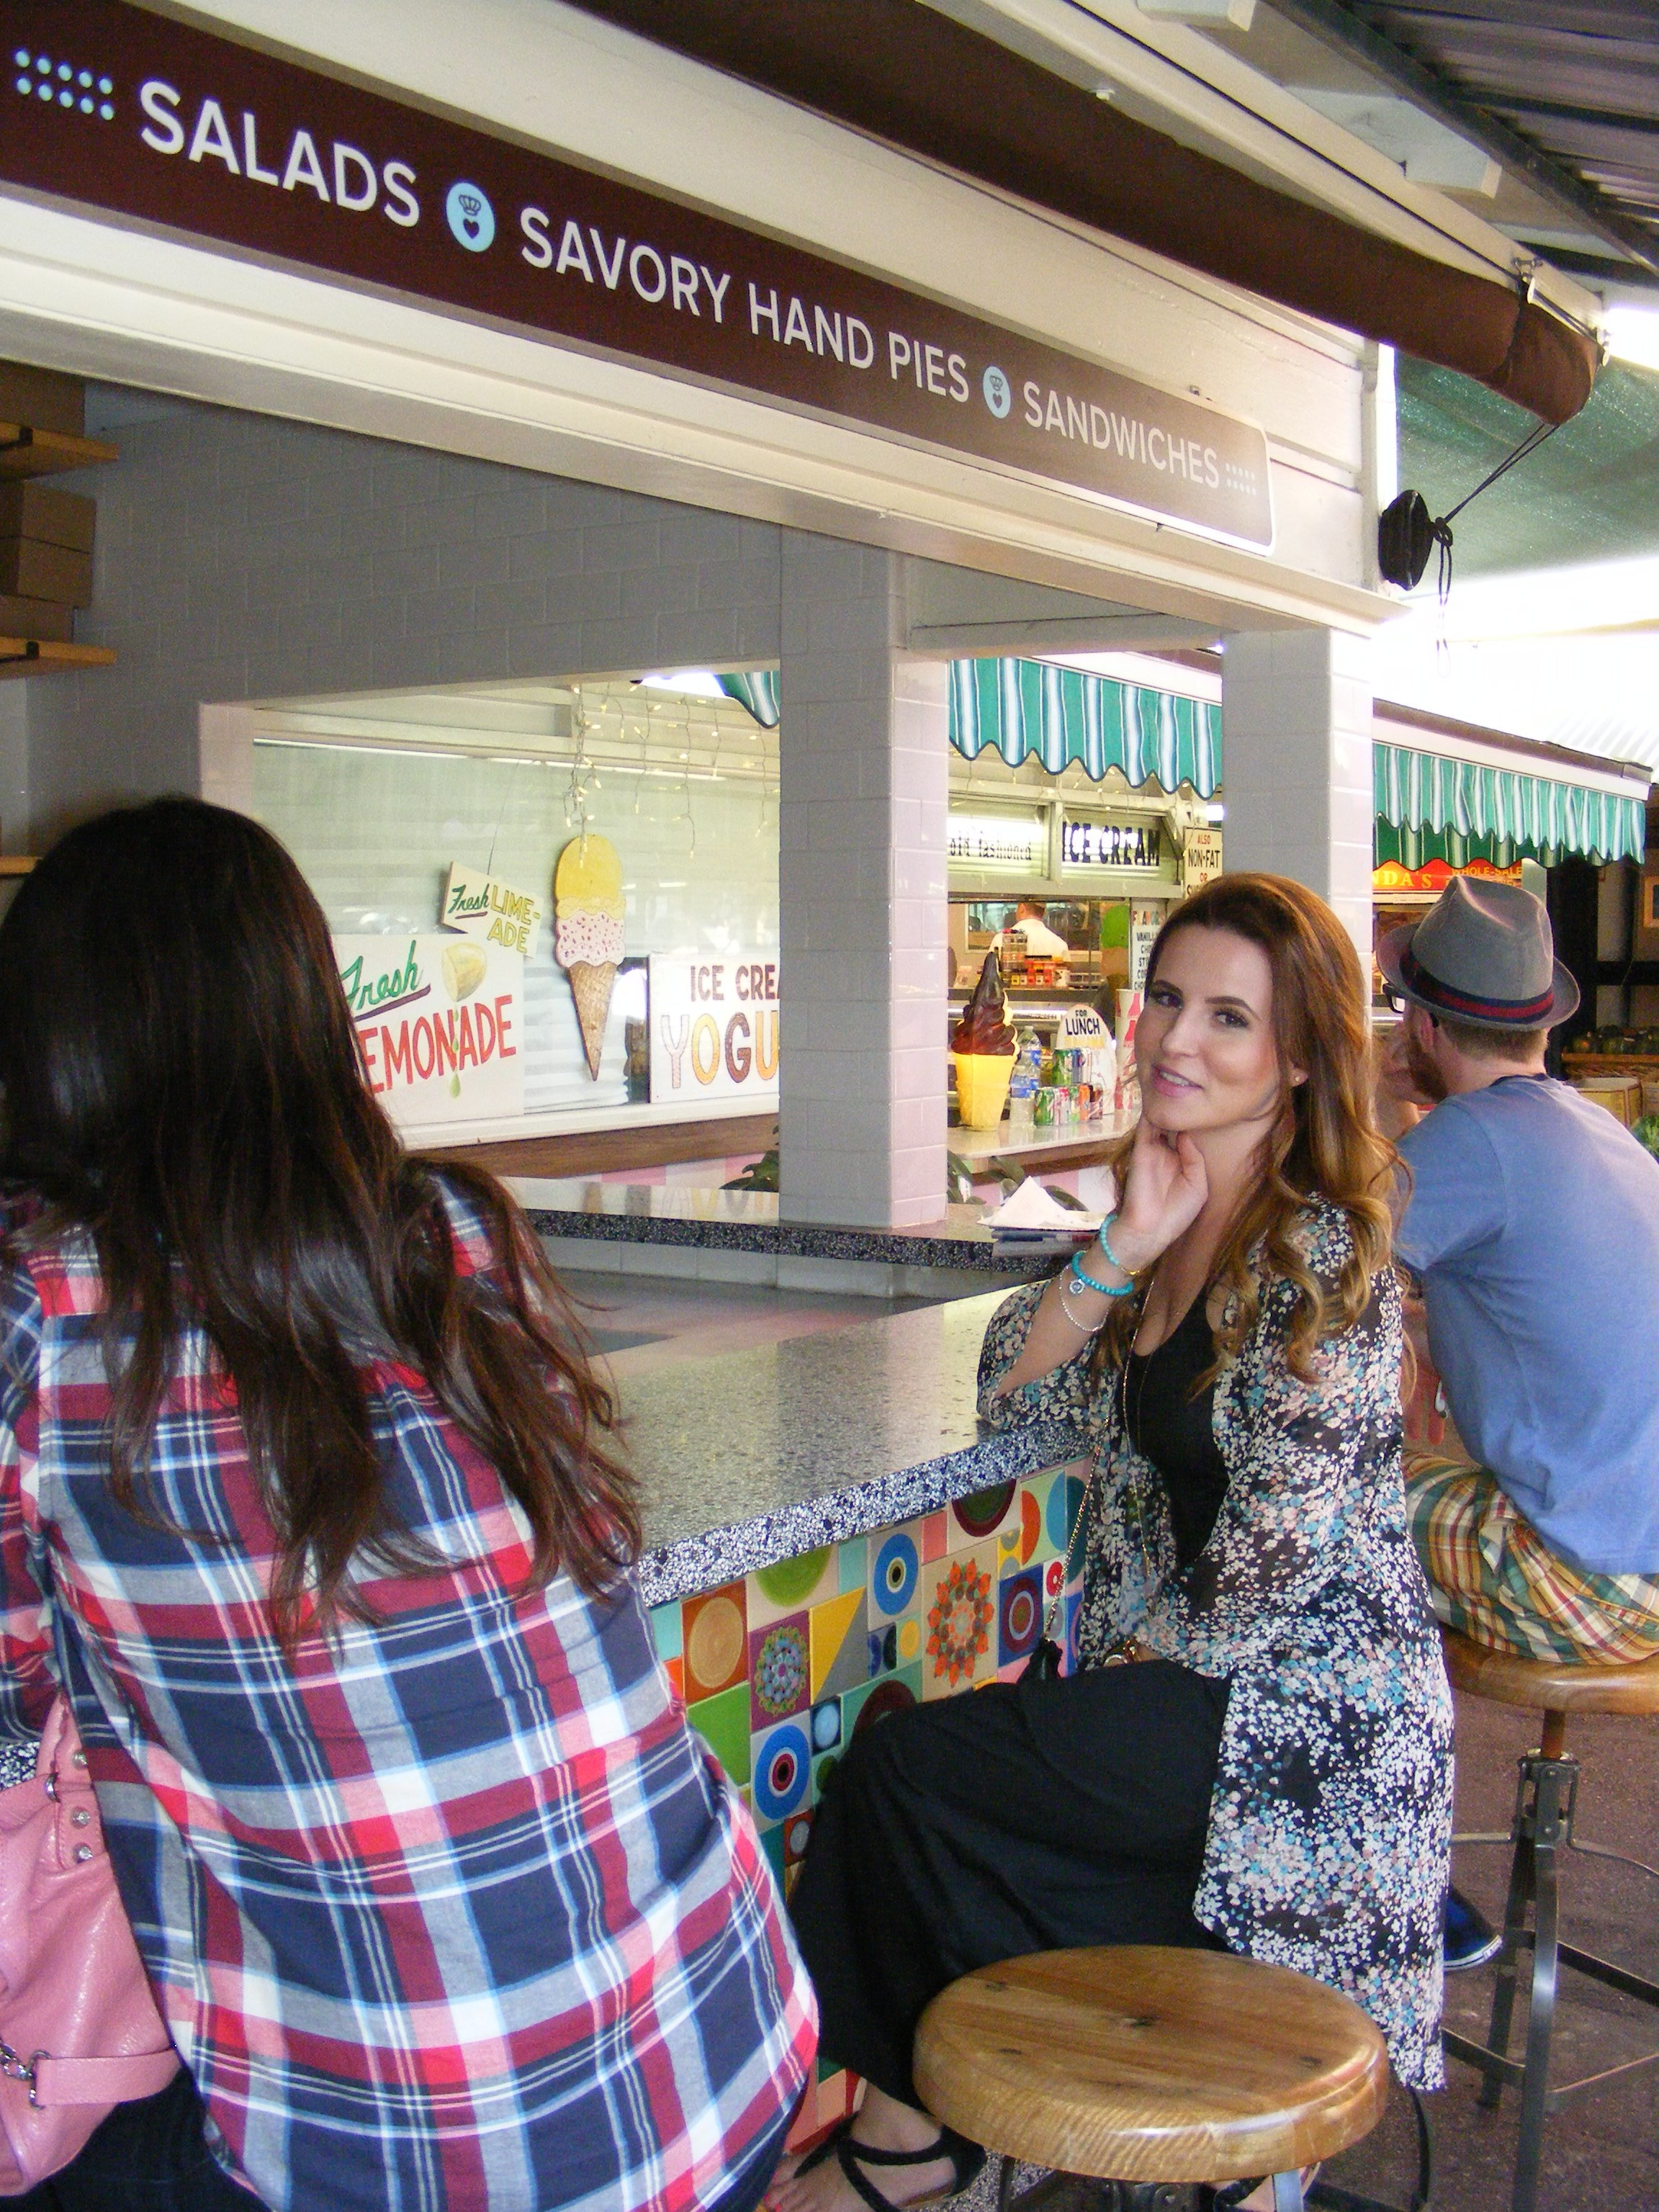 Best place for brunch in L.A., The Farmers Market!